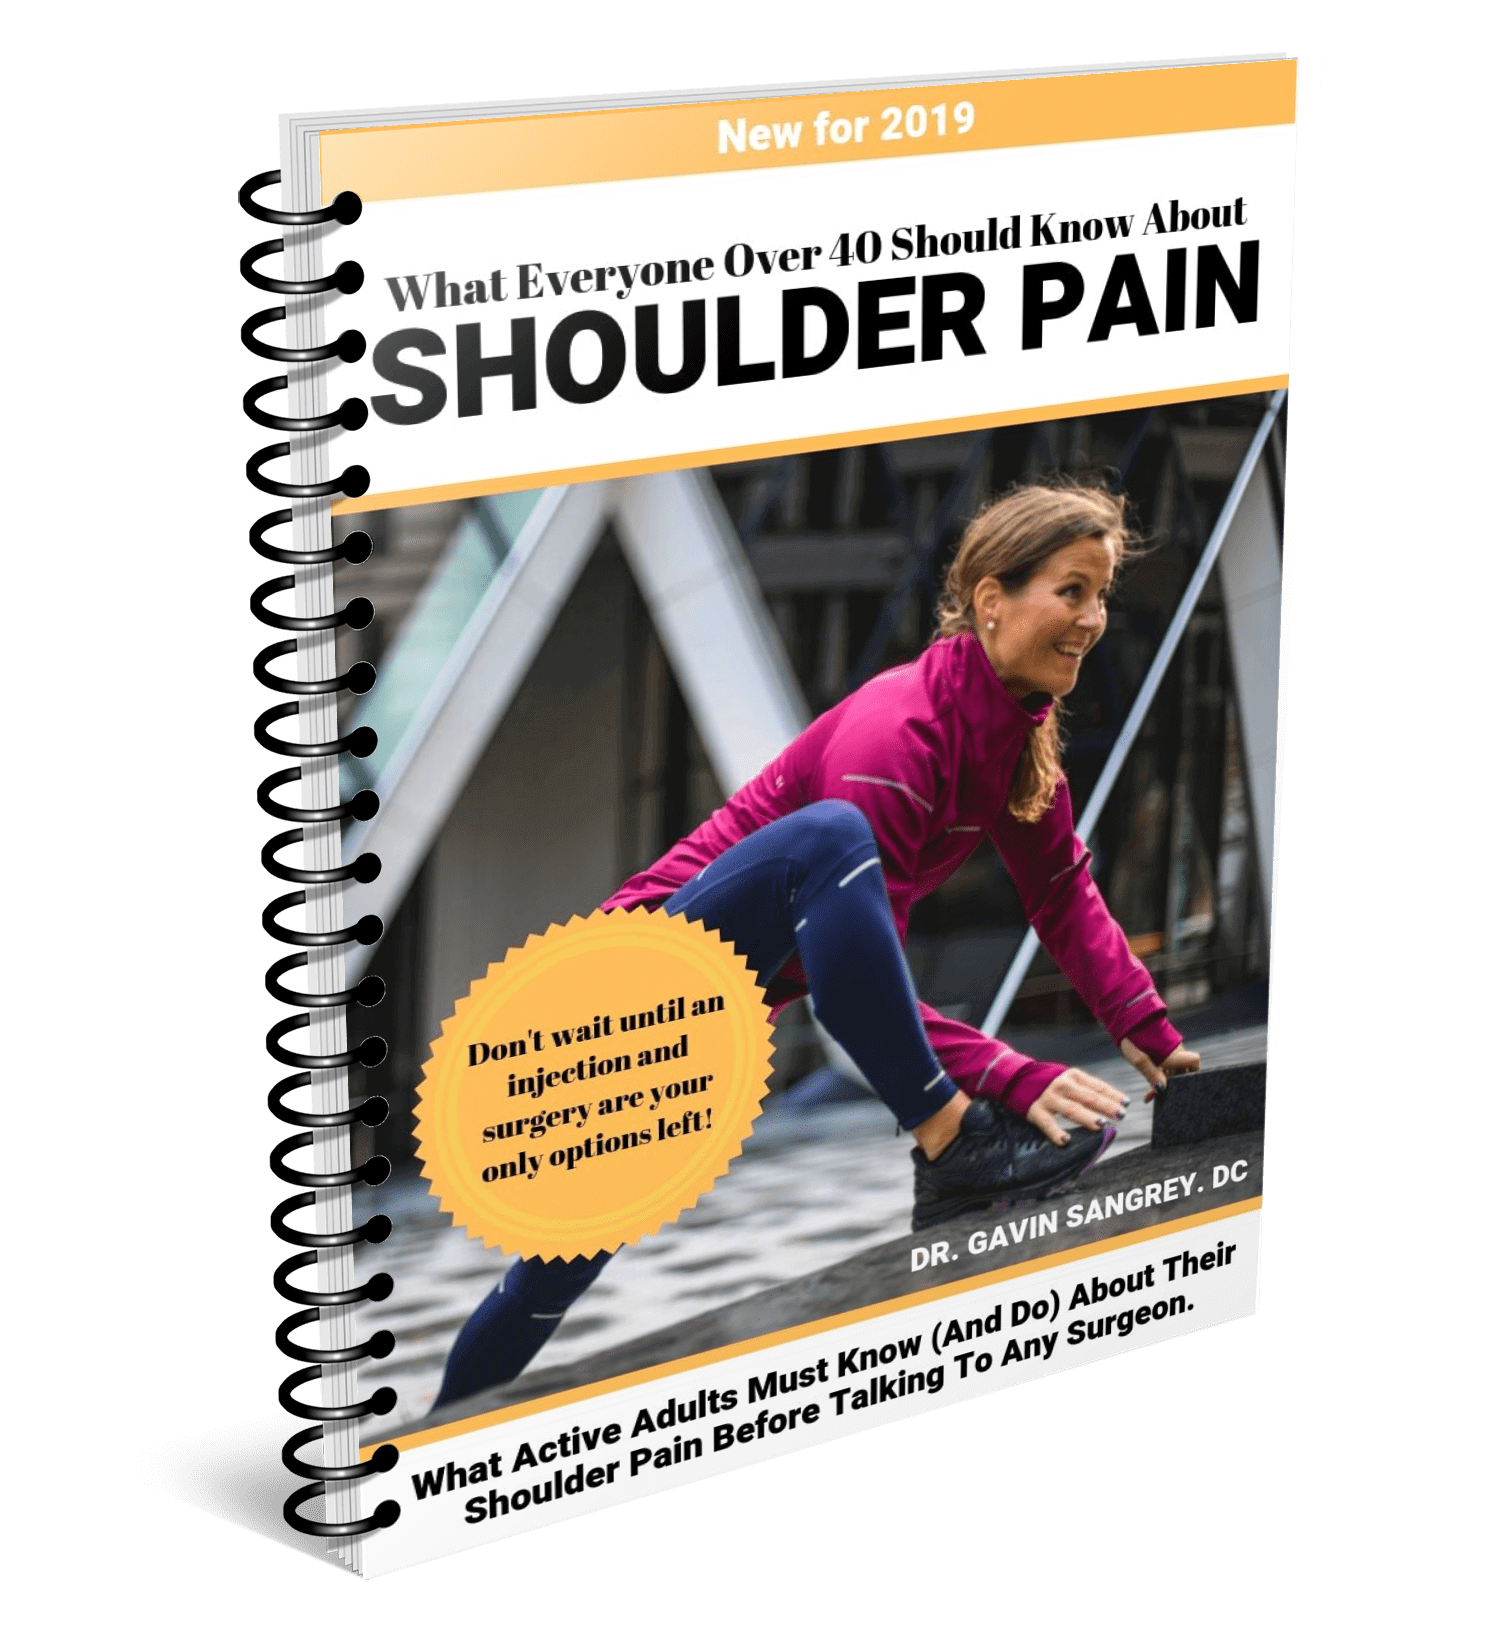 What You Need To Know About Your Shoulder Pain (Especially If You Are Over 40!) - What active adults must know about dealing with shoulder pain to give you your best chance of avoiding any injection or surgery down the road.